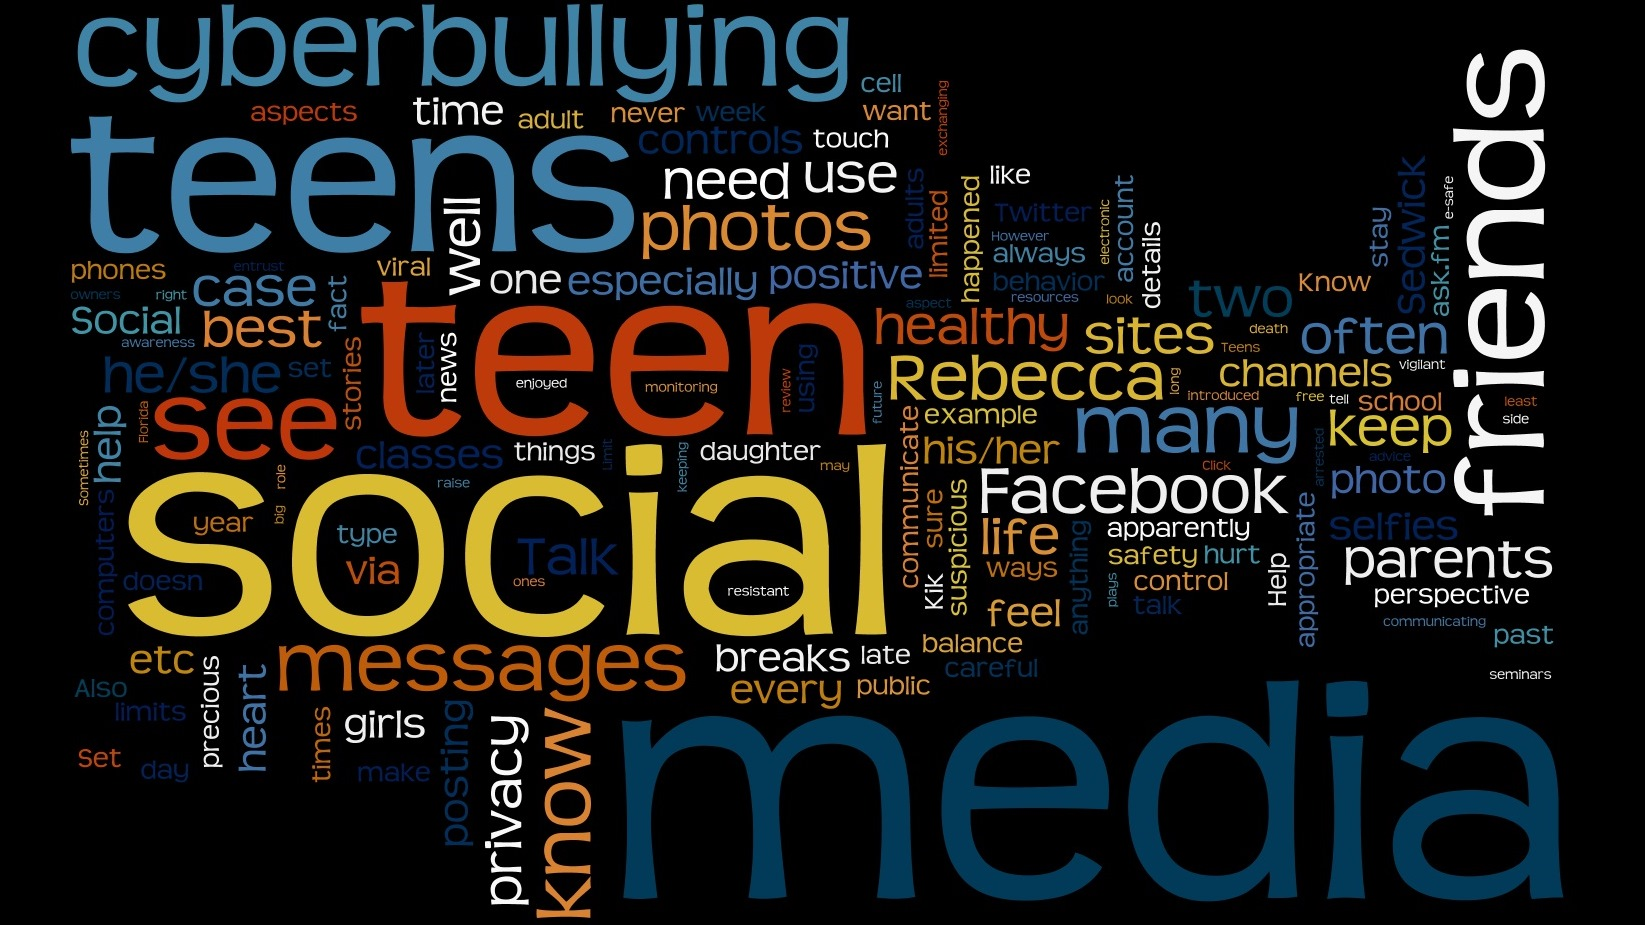 cyber bully Cyberbullying is using information and communication technologies to deliberately and repeatedly behave in a manner intended to harass, threaten, humiliate or harm others.